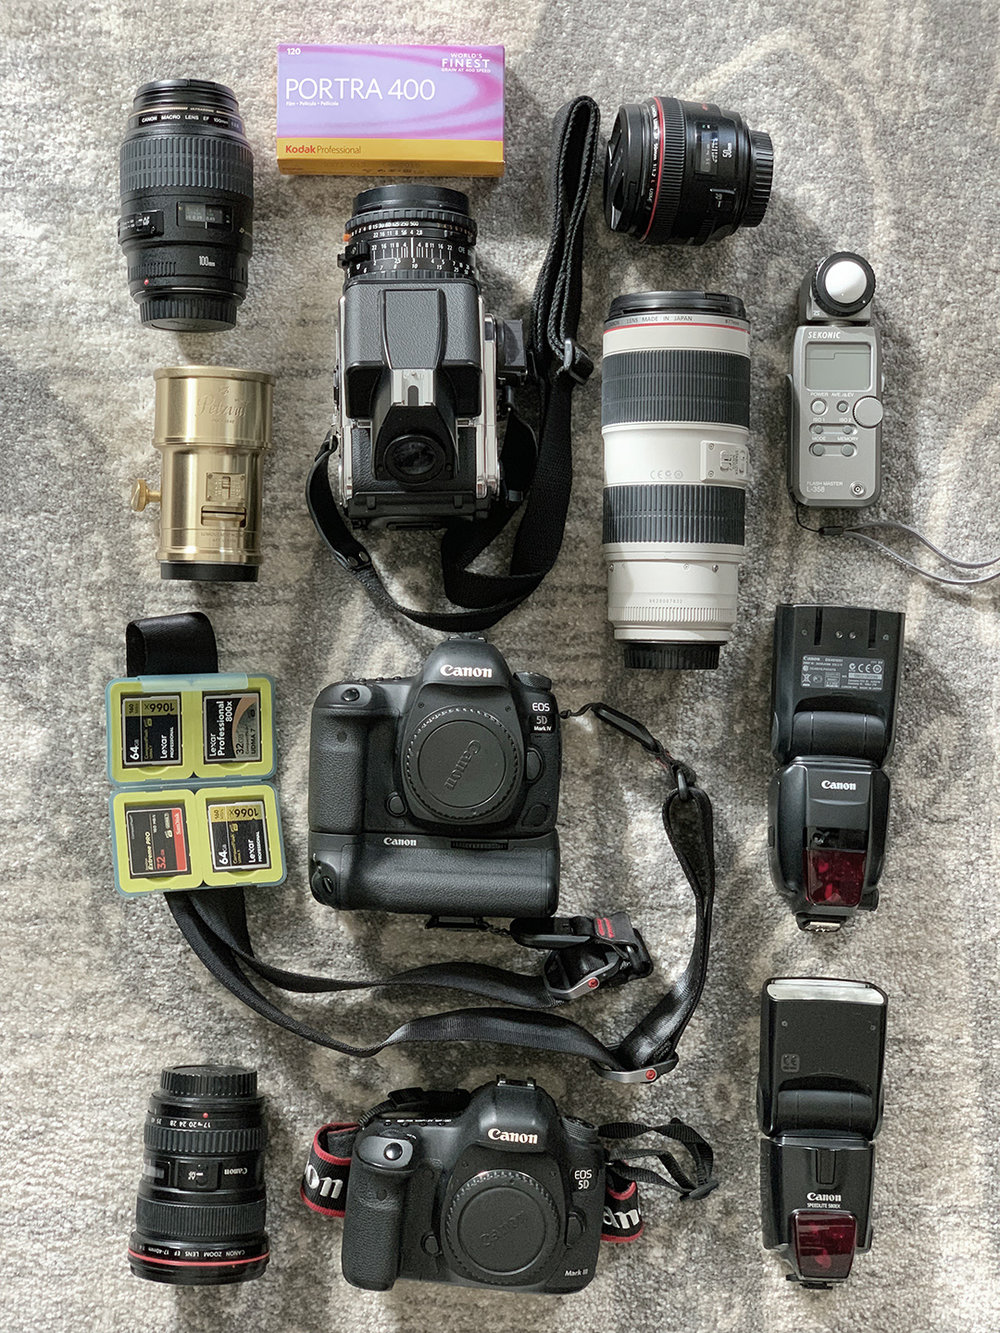 Professional wedding photography cameras, lenses, flashes, and film cameras.